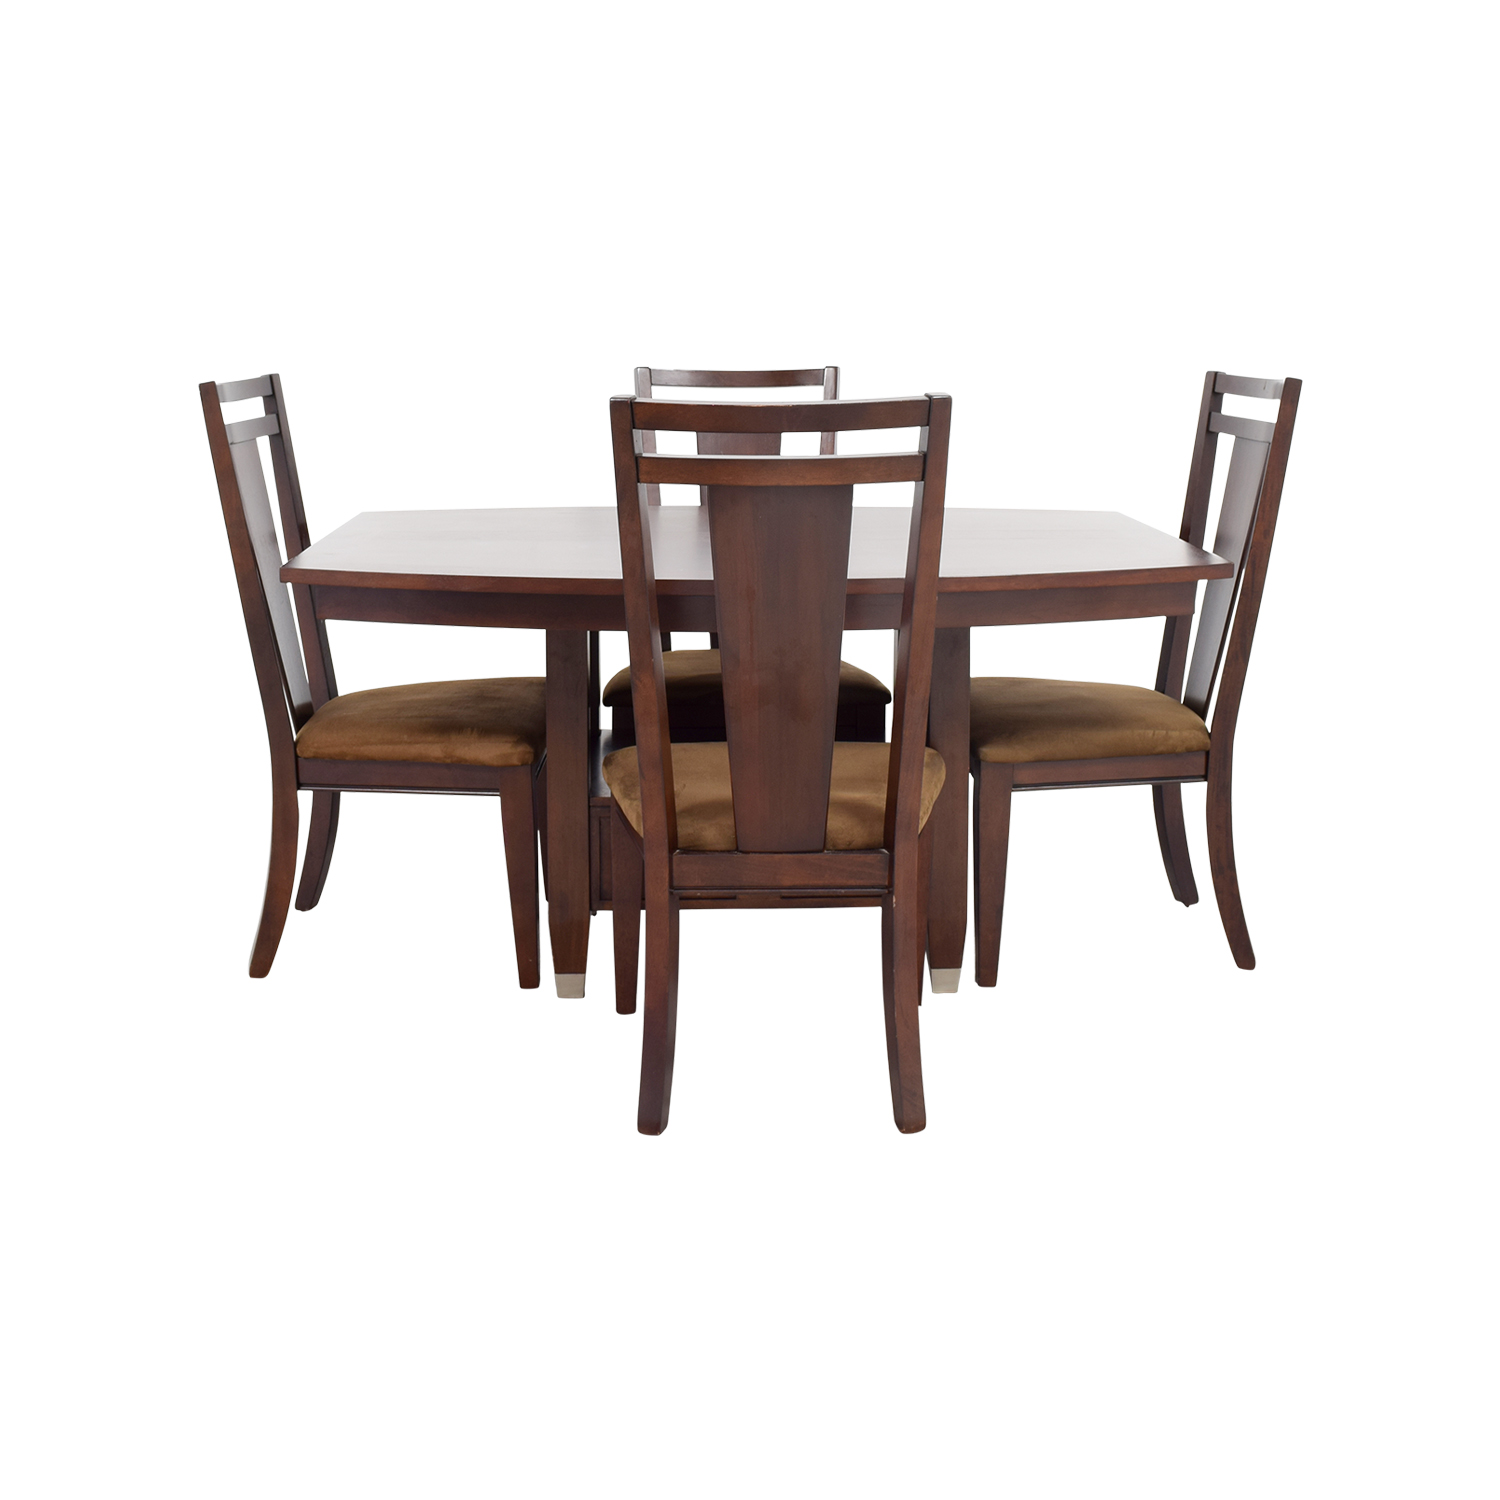 78% OFF   Broyhill Furniture Broyhill Wood Dining Table Set / Tables